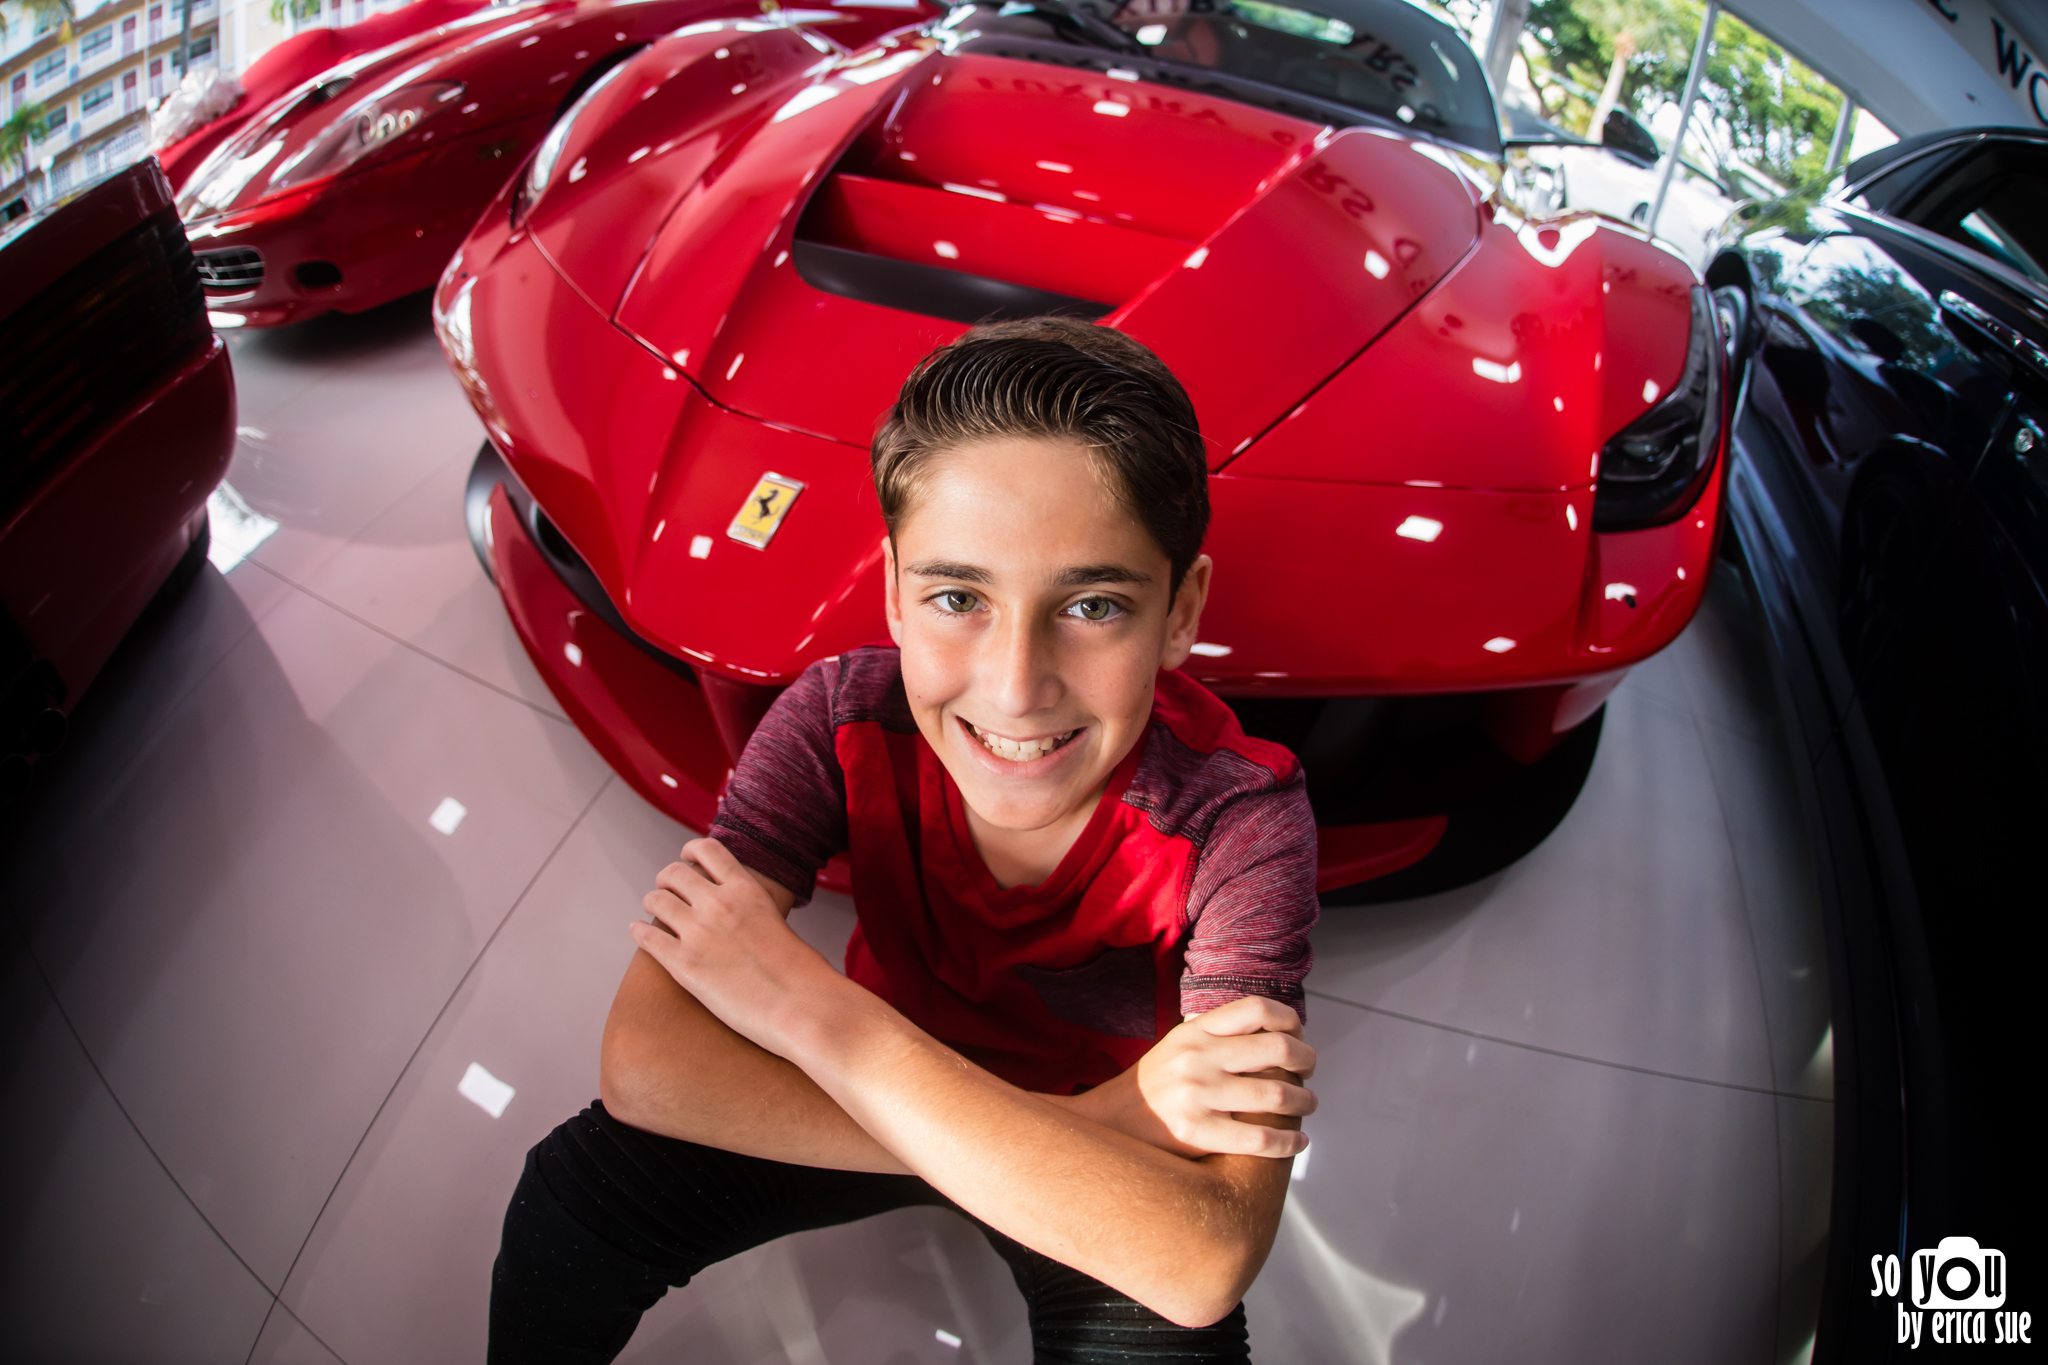 so-you-by-erica-sue-mitzvah-photographer-collection-luxury-car-ft-lauderdale-4902.jpg